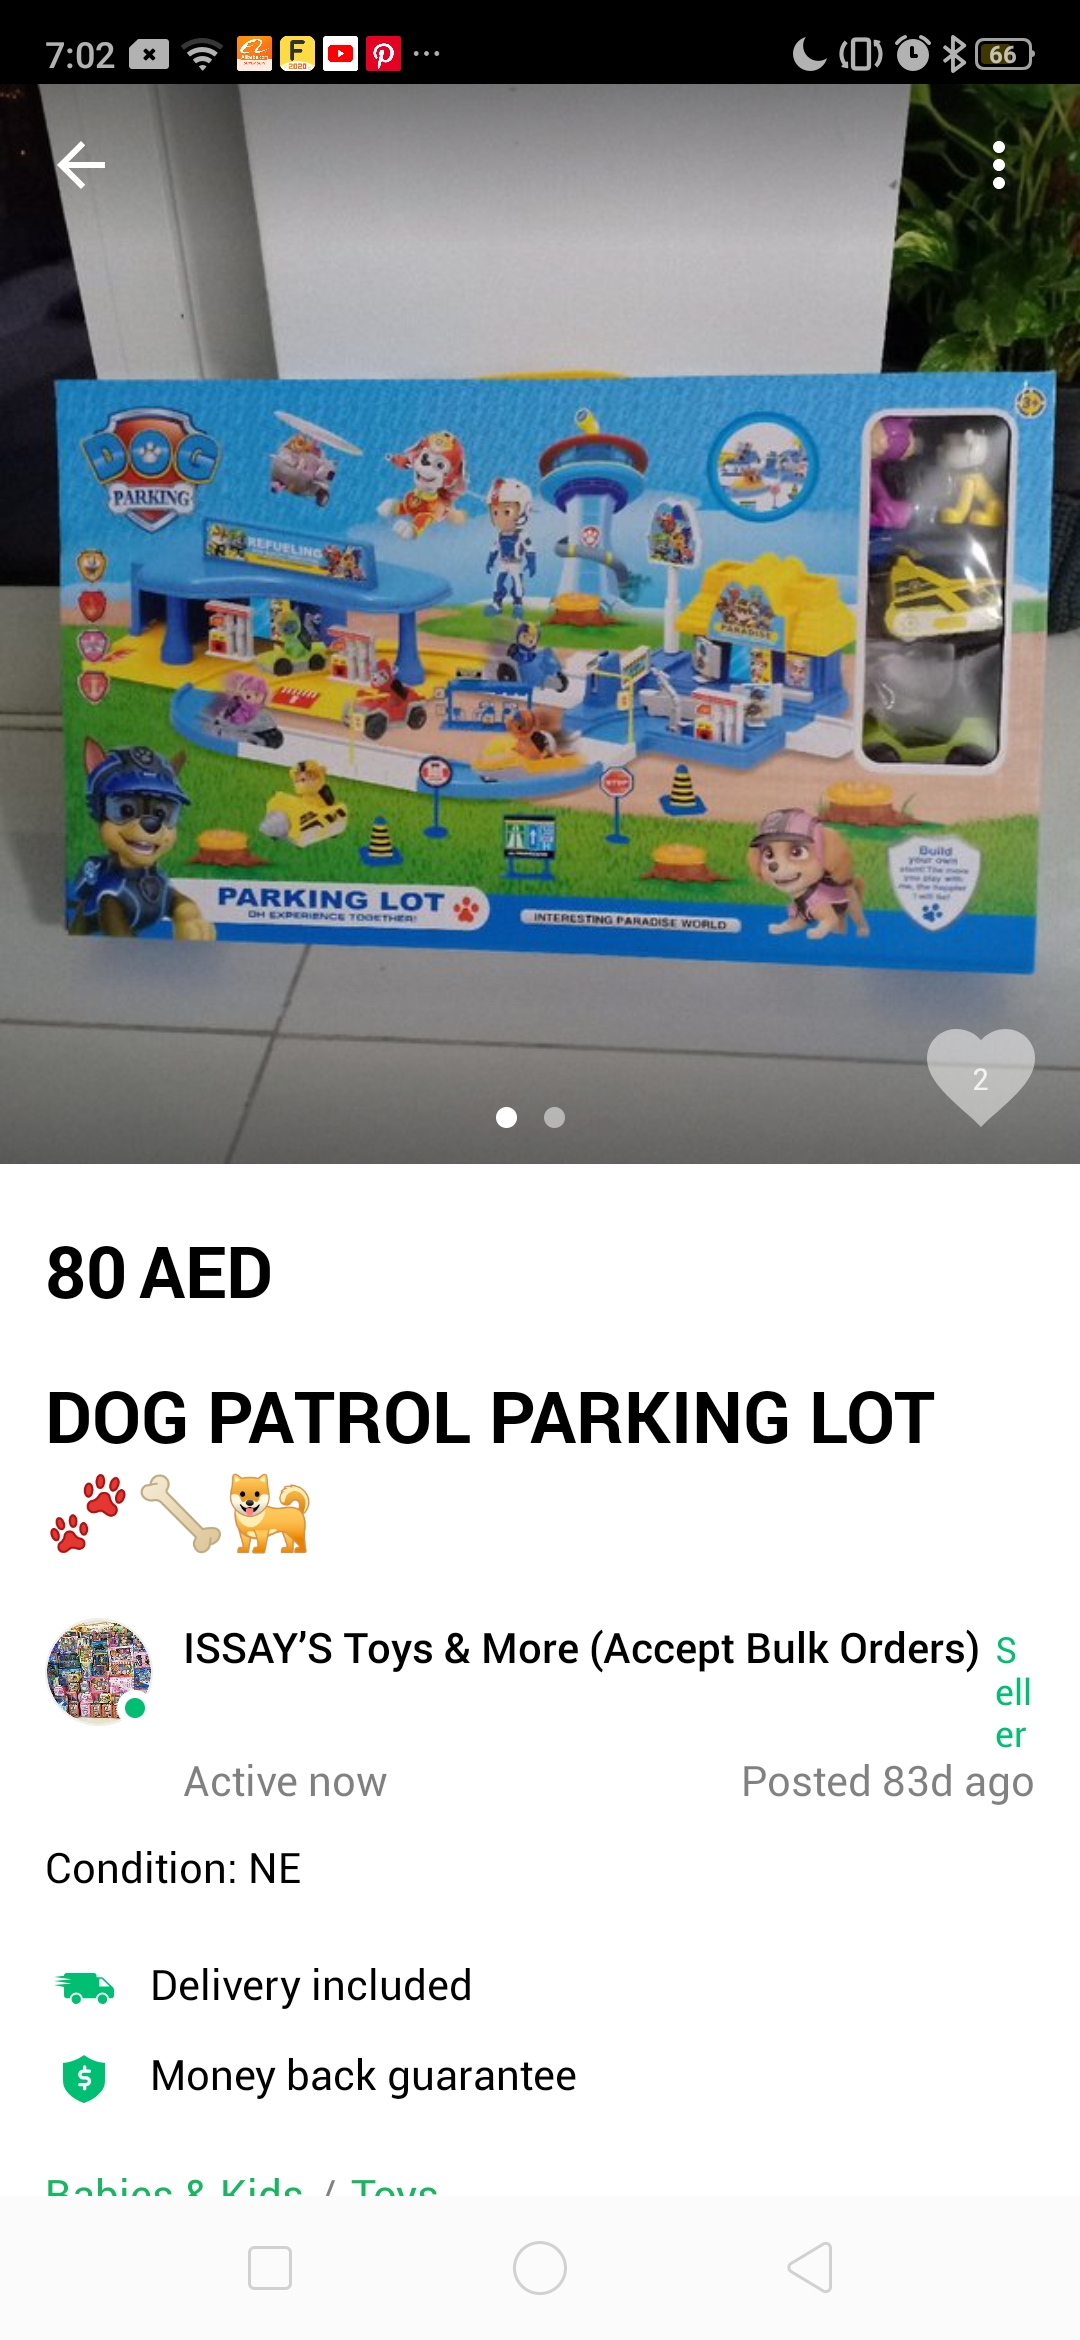 ISSAY'S Toys & More (Accept Bulk Orders)